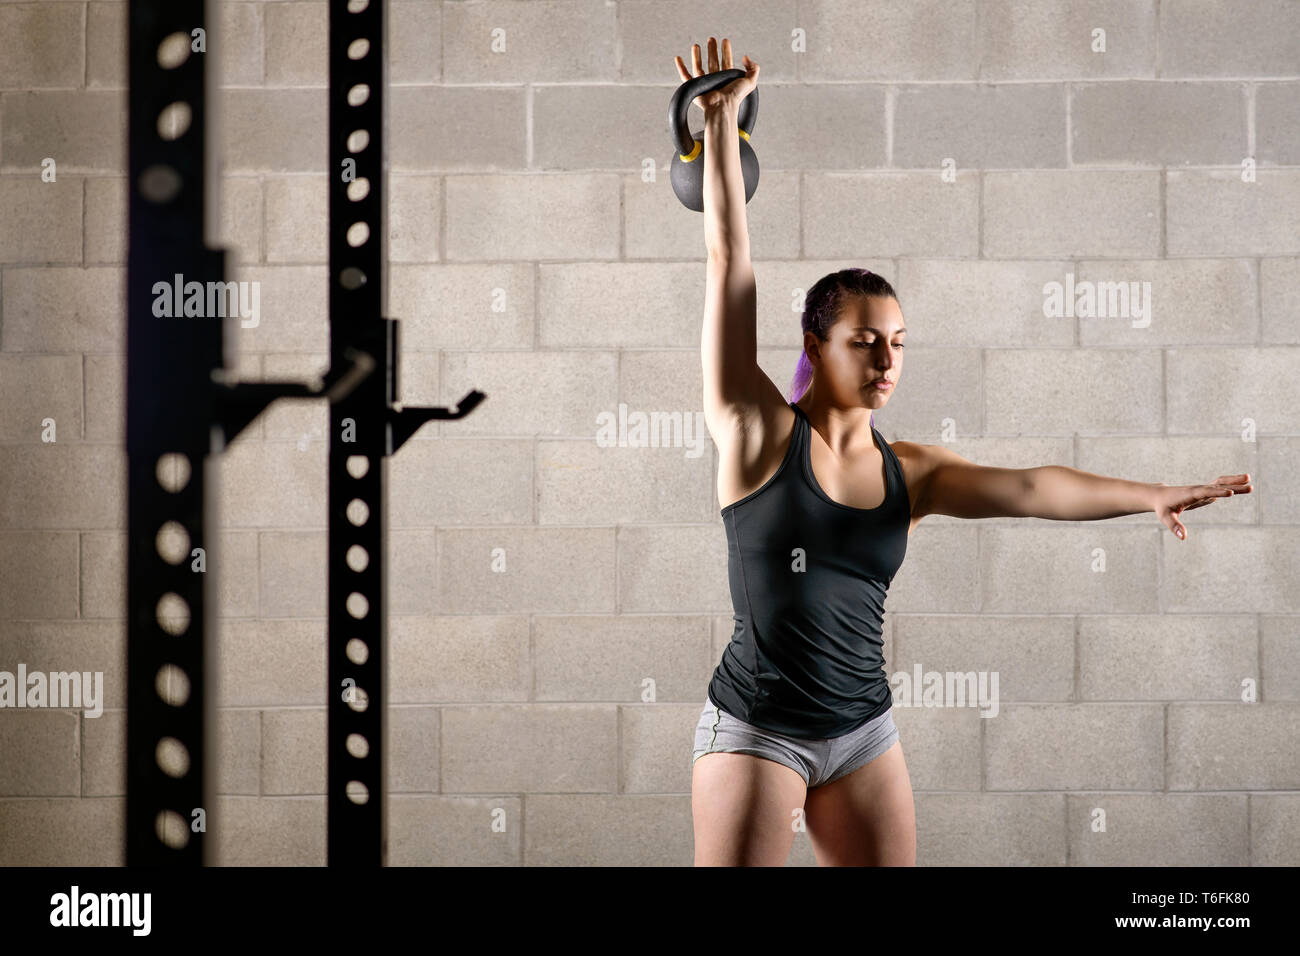 Muscular strong young woman working out in a gym with a kettlebell weight raising it with extended arm in a health and fitness concept - Stock Image